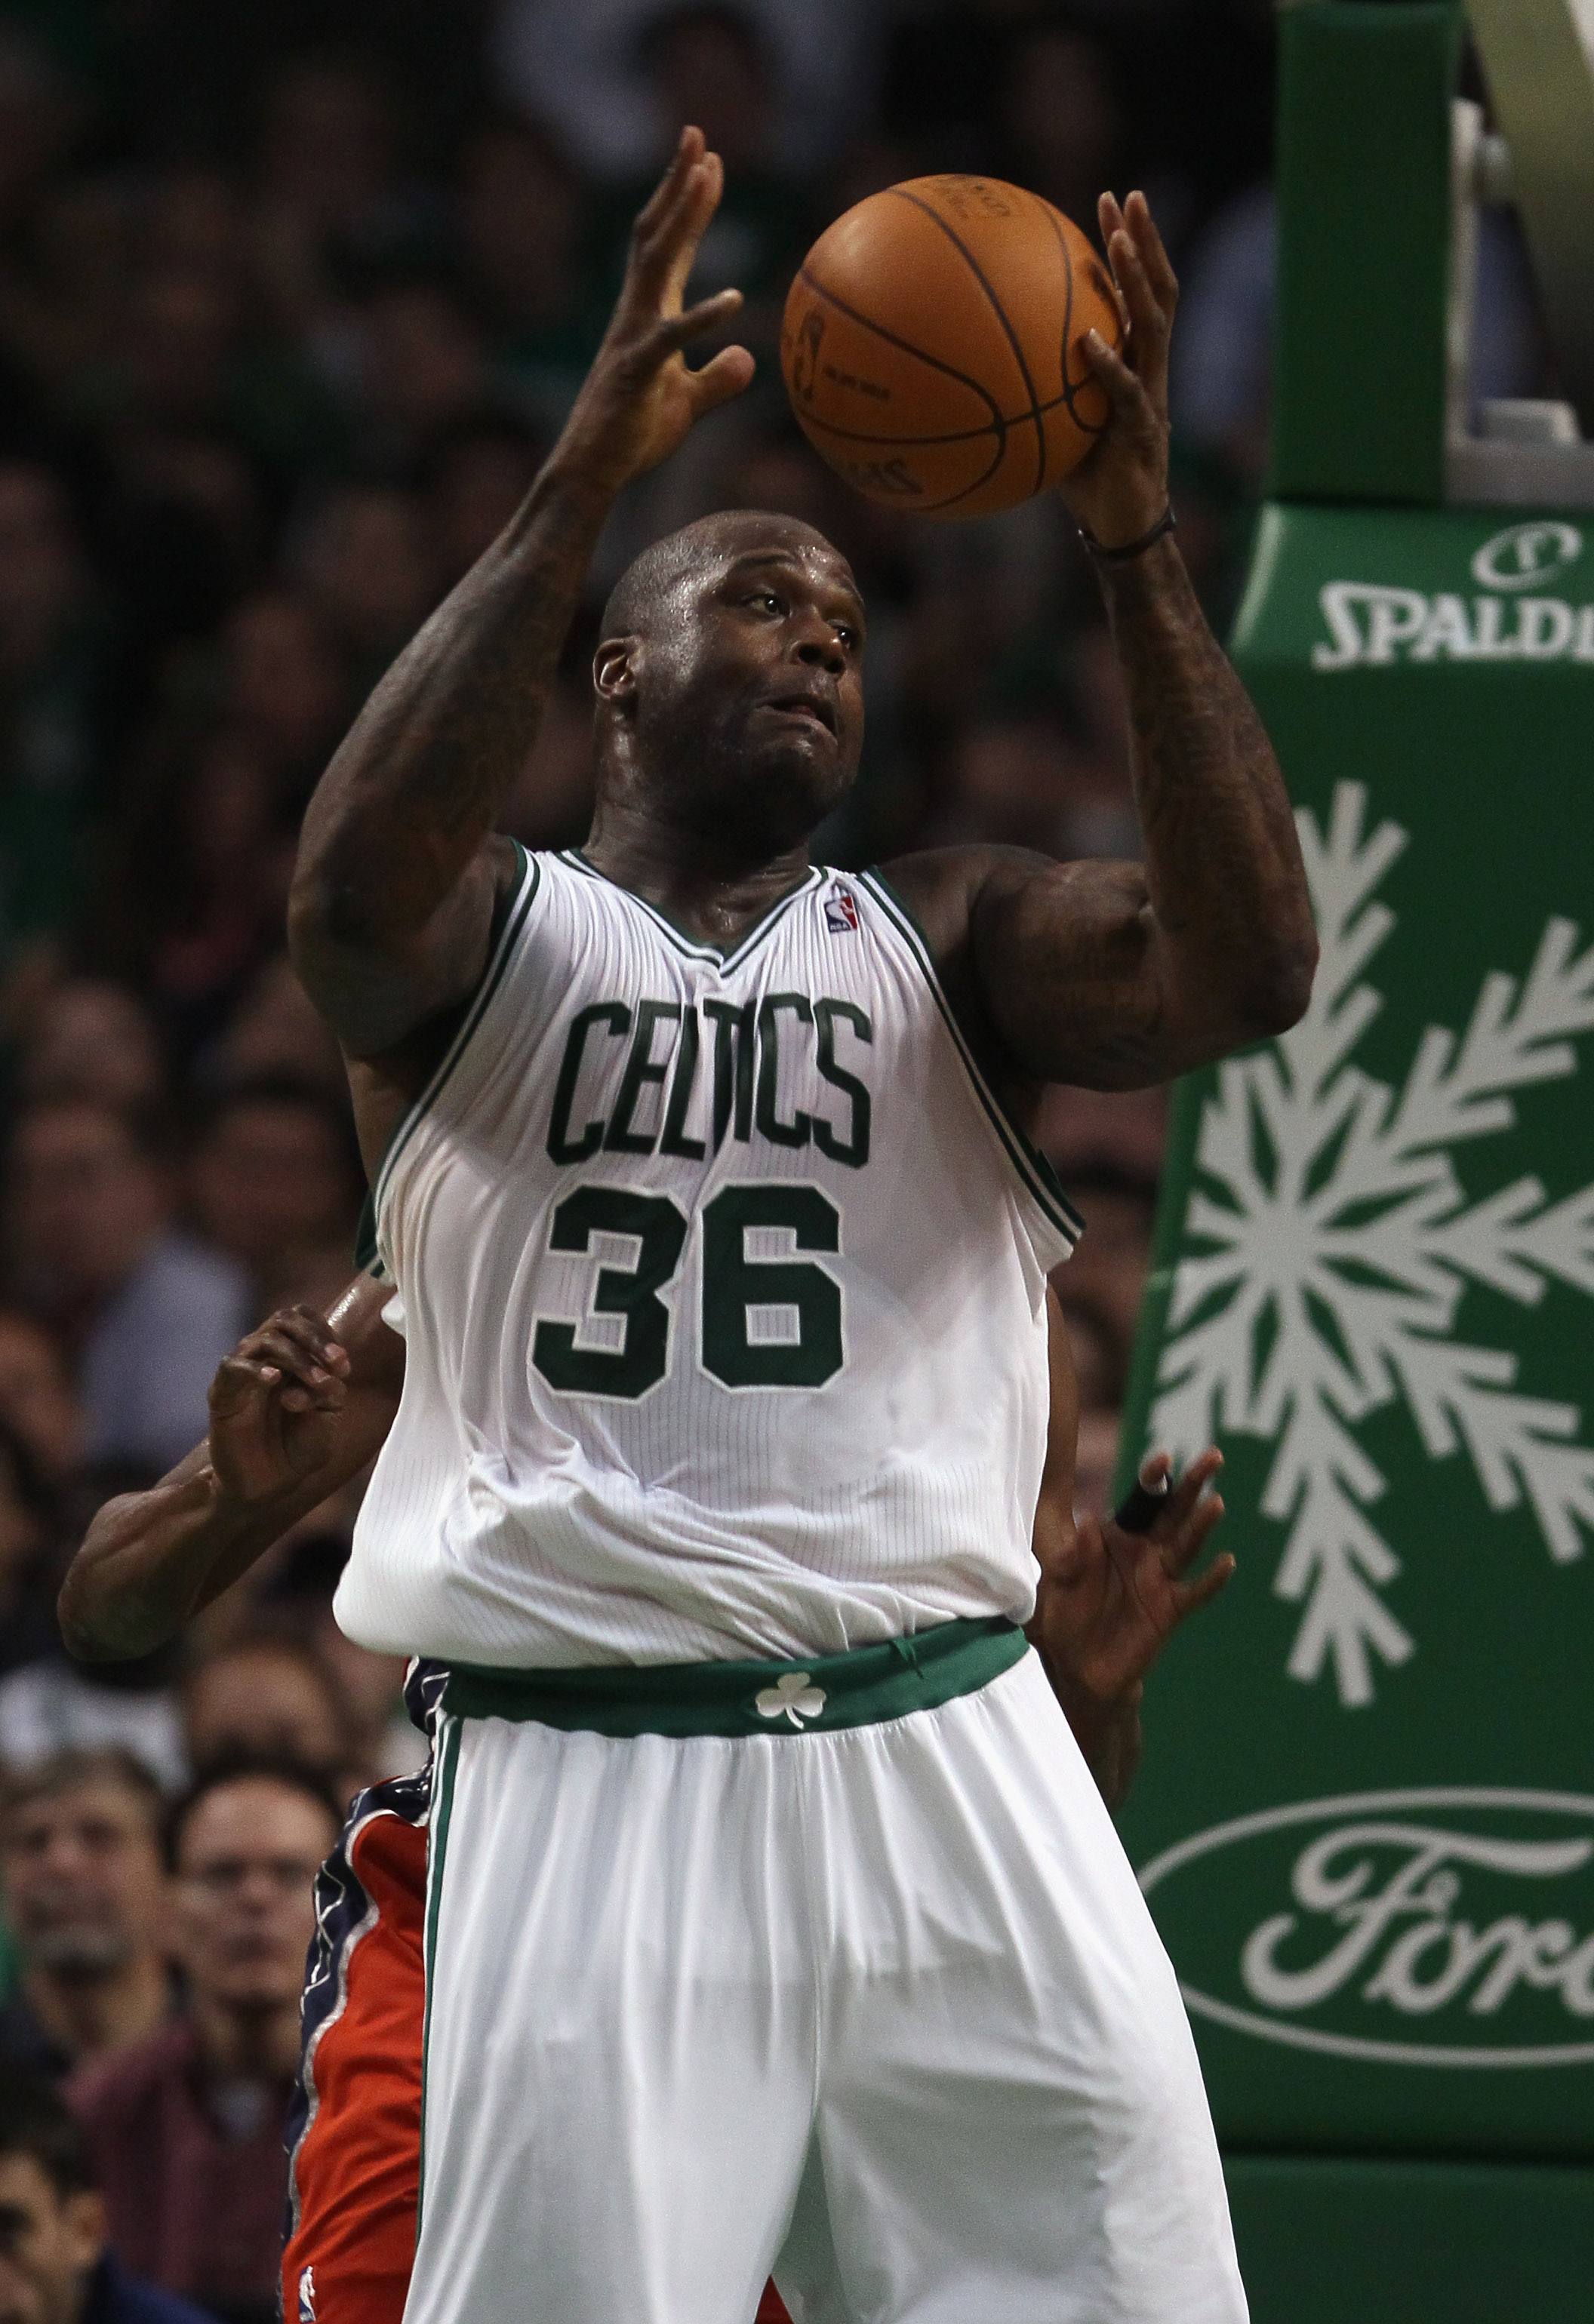 BOSTON - NOVEMBER 24:  Shaquille O'Neal #36 of the Boston Celtics grabs the ball in the second half against the New Jersey Nets on November 24, 2010 at the TD Garden in Boston, Massachusetts. The Celtics defeated the nets 89-83. NOTE TO USER: User express